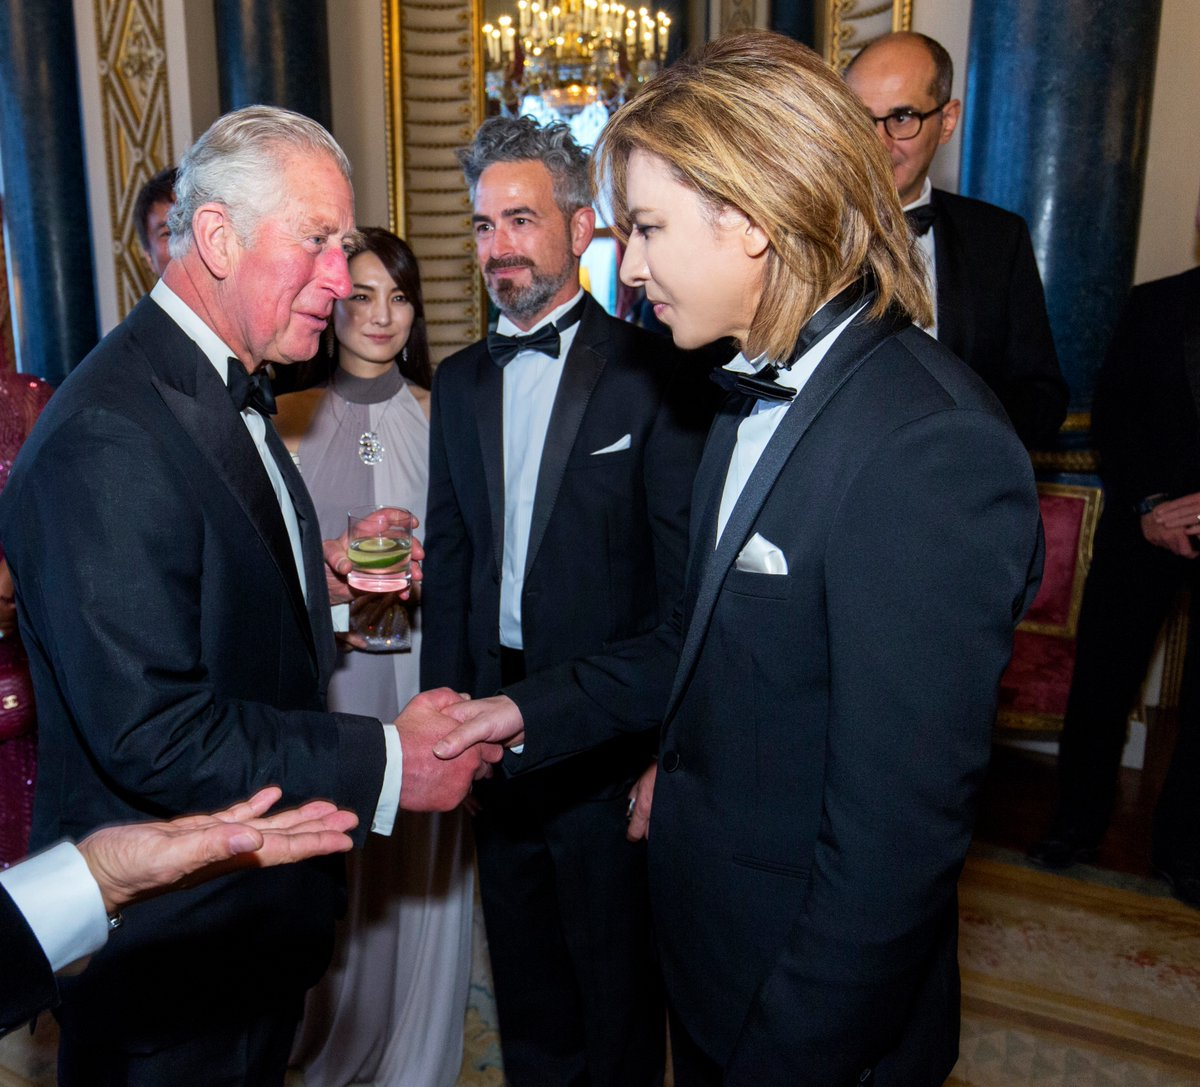 It was an honour to meet your Royal Highness Prince Charles at #BuckinghamPalace in #London. お会いできて光栄です